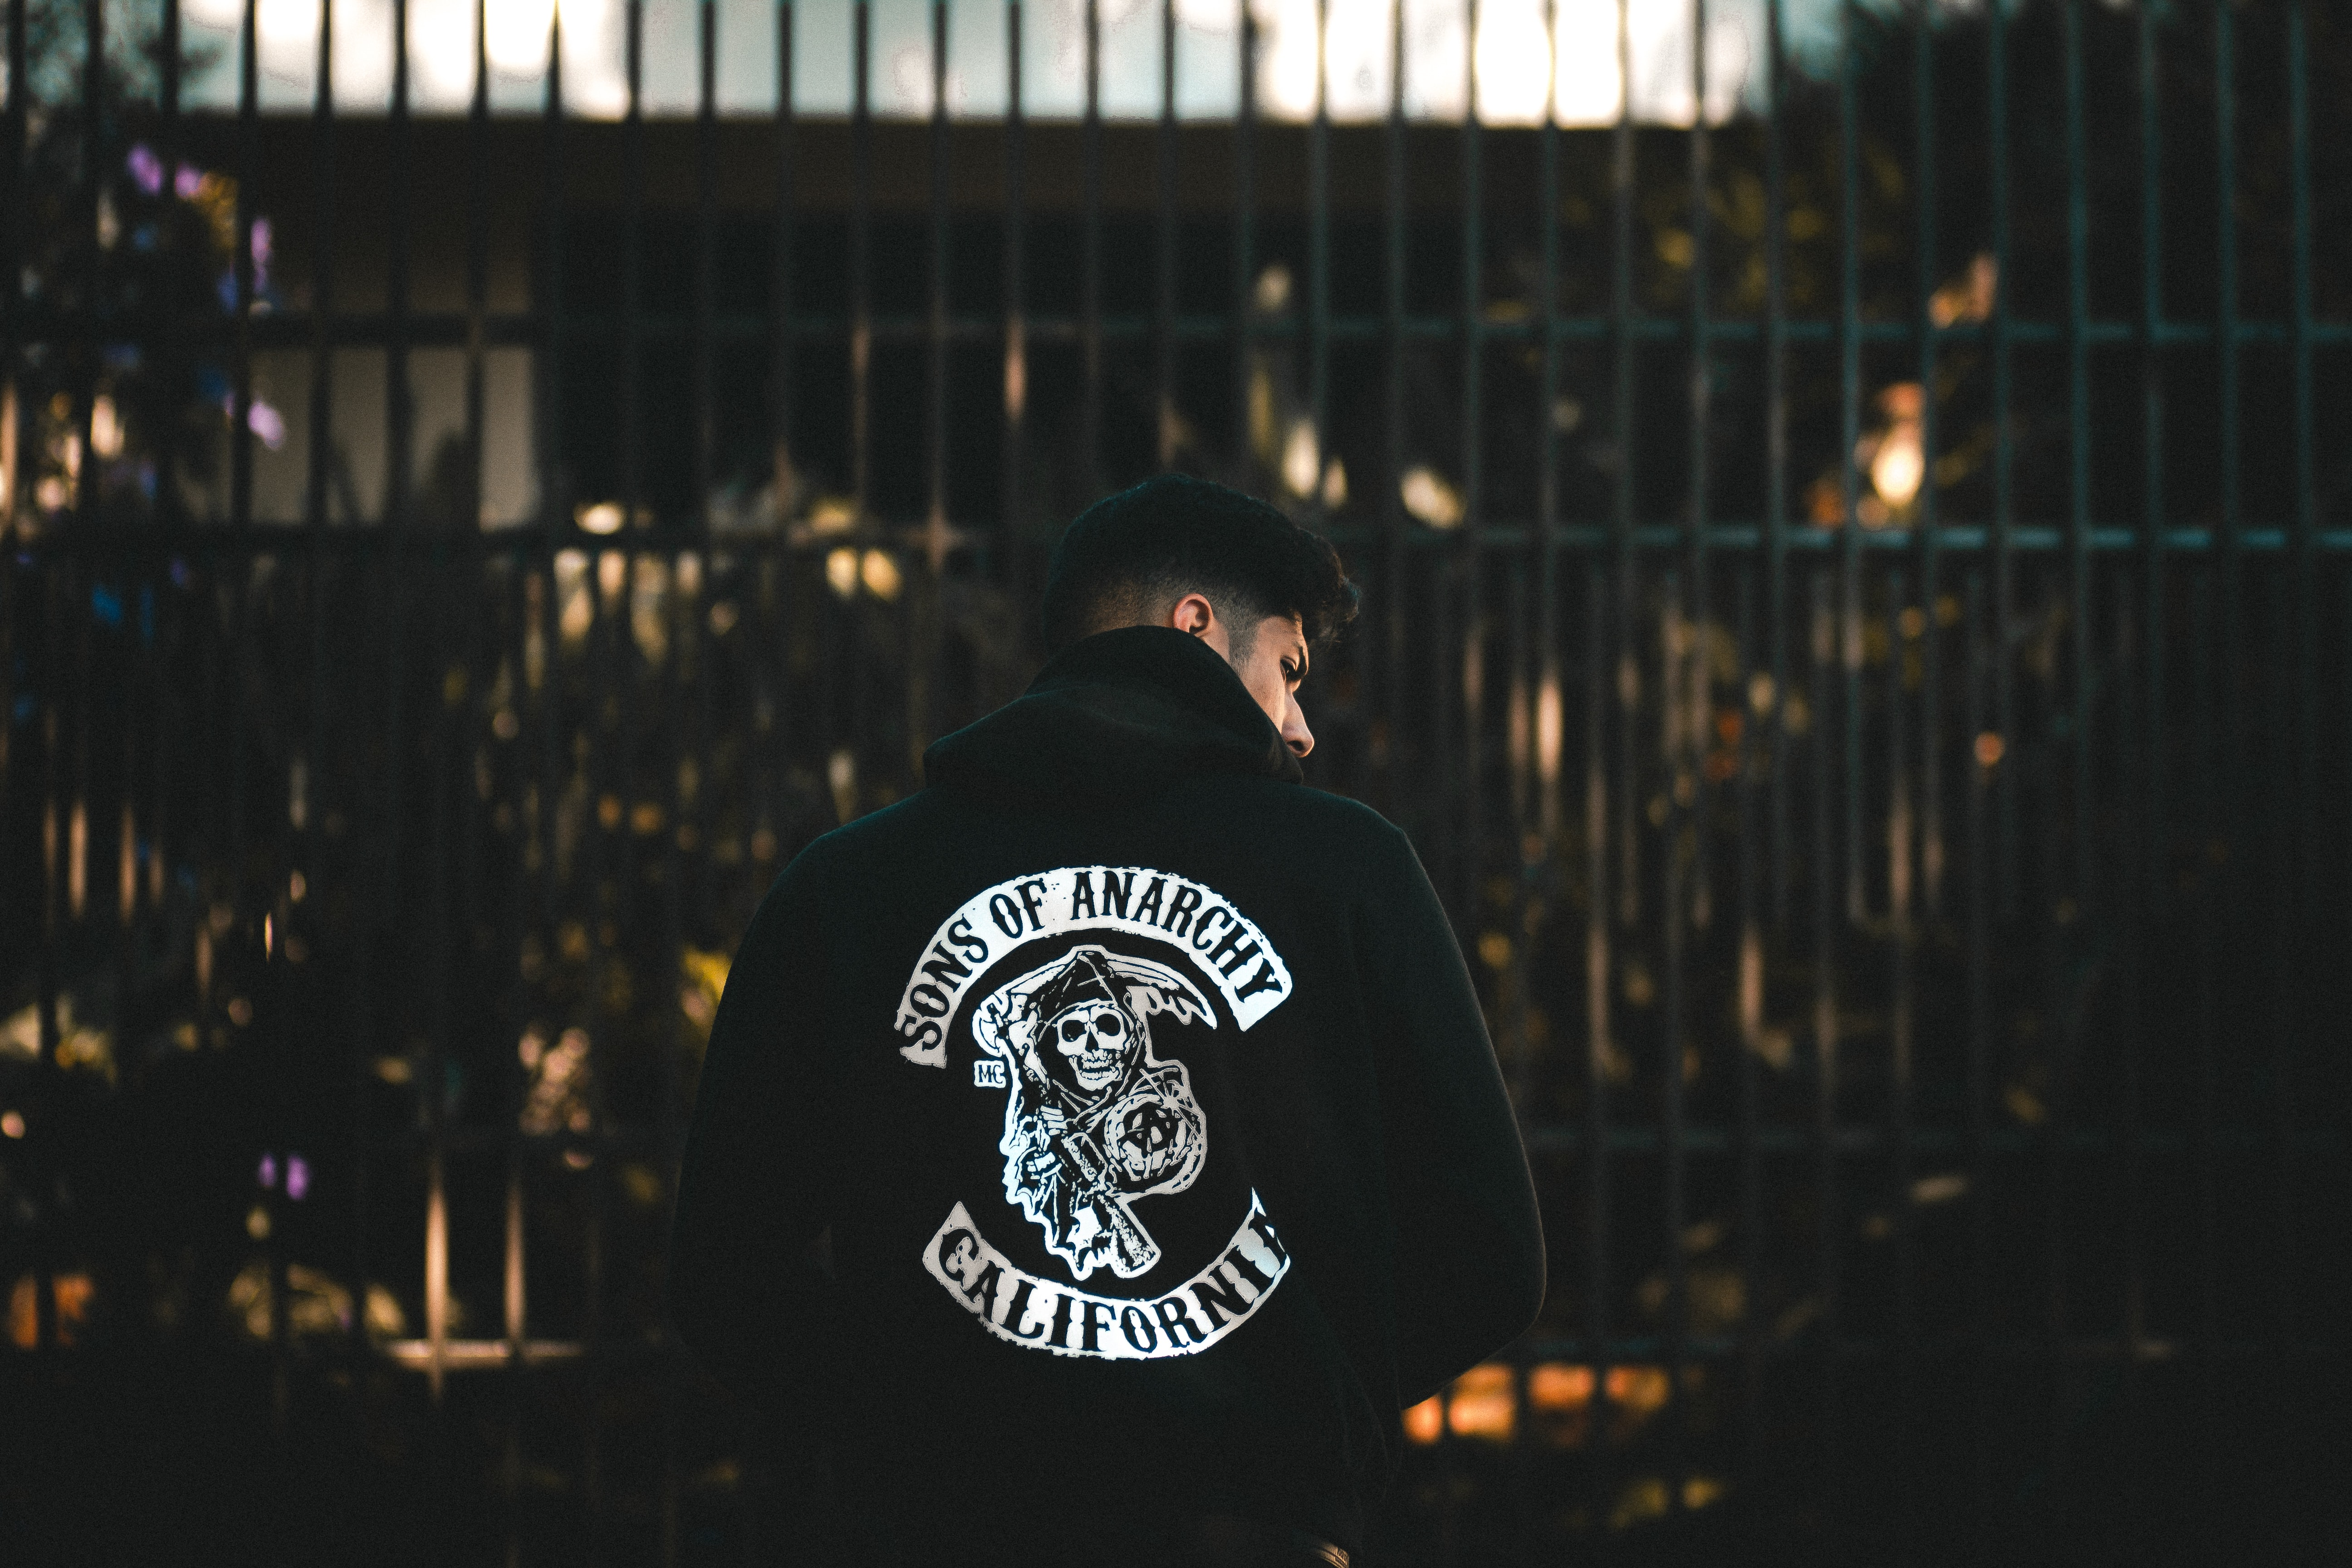 Sons Of Anarchy Pictures Download Free Images On Unsplash